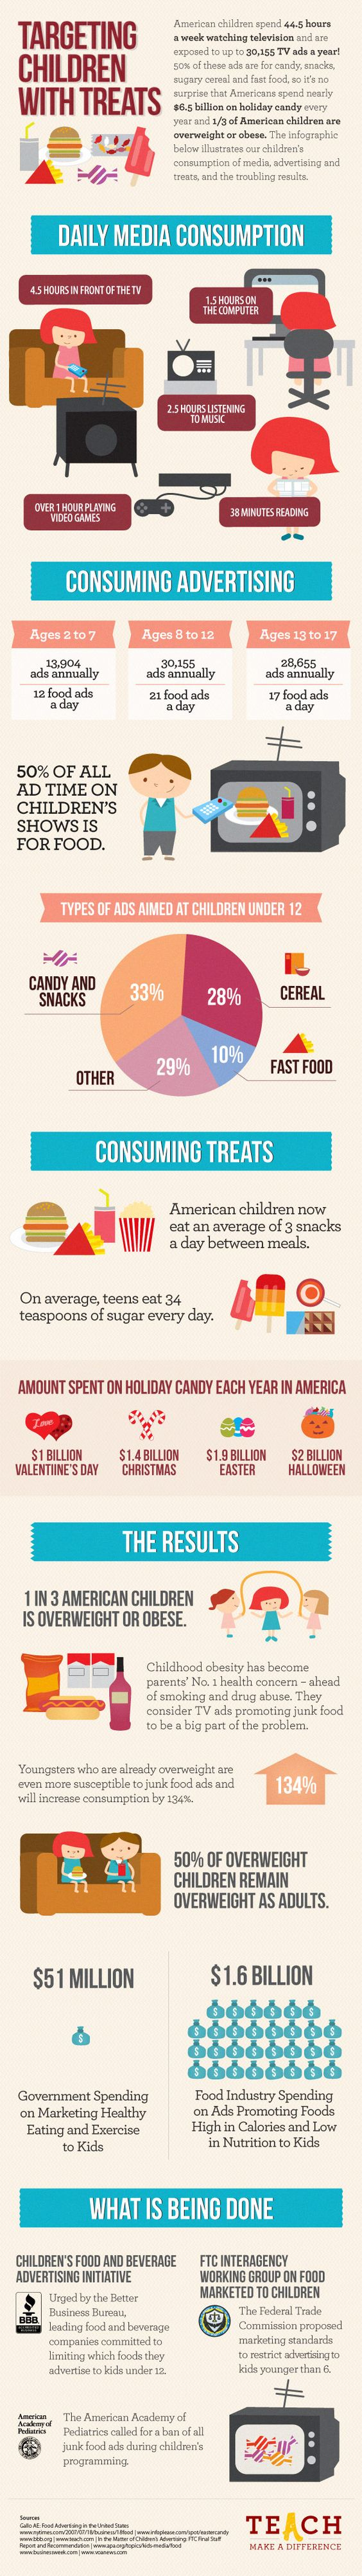 childhood obesity and the nutritional value Understanding the main dietary patterns that both increase and may decrease risk for childhood obesity  these extra calories can quickly add up to excess pounds.